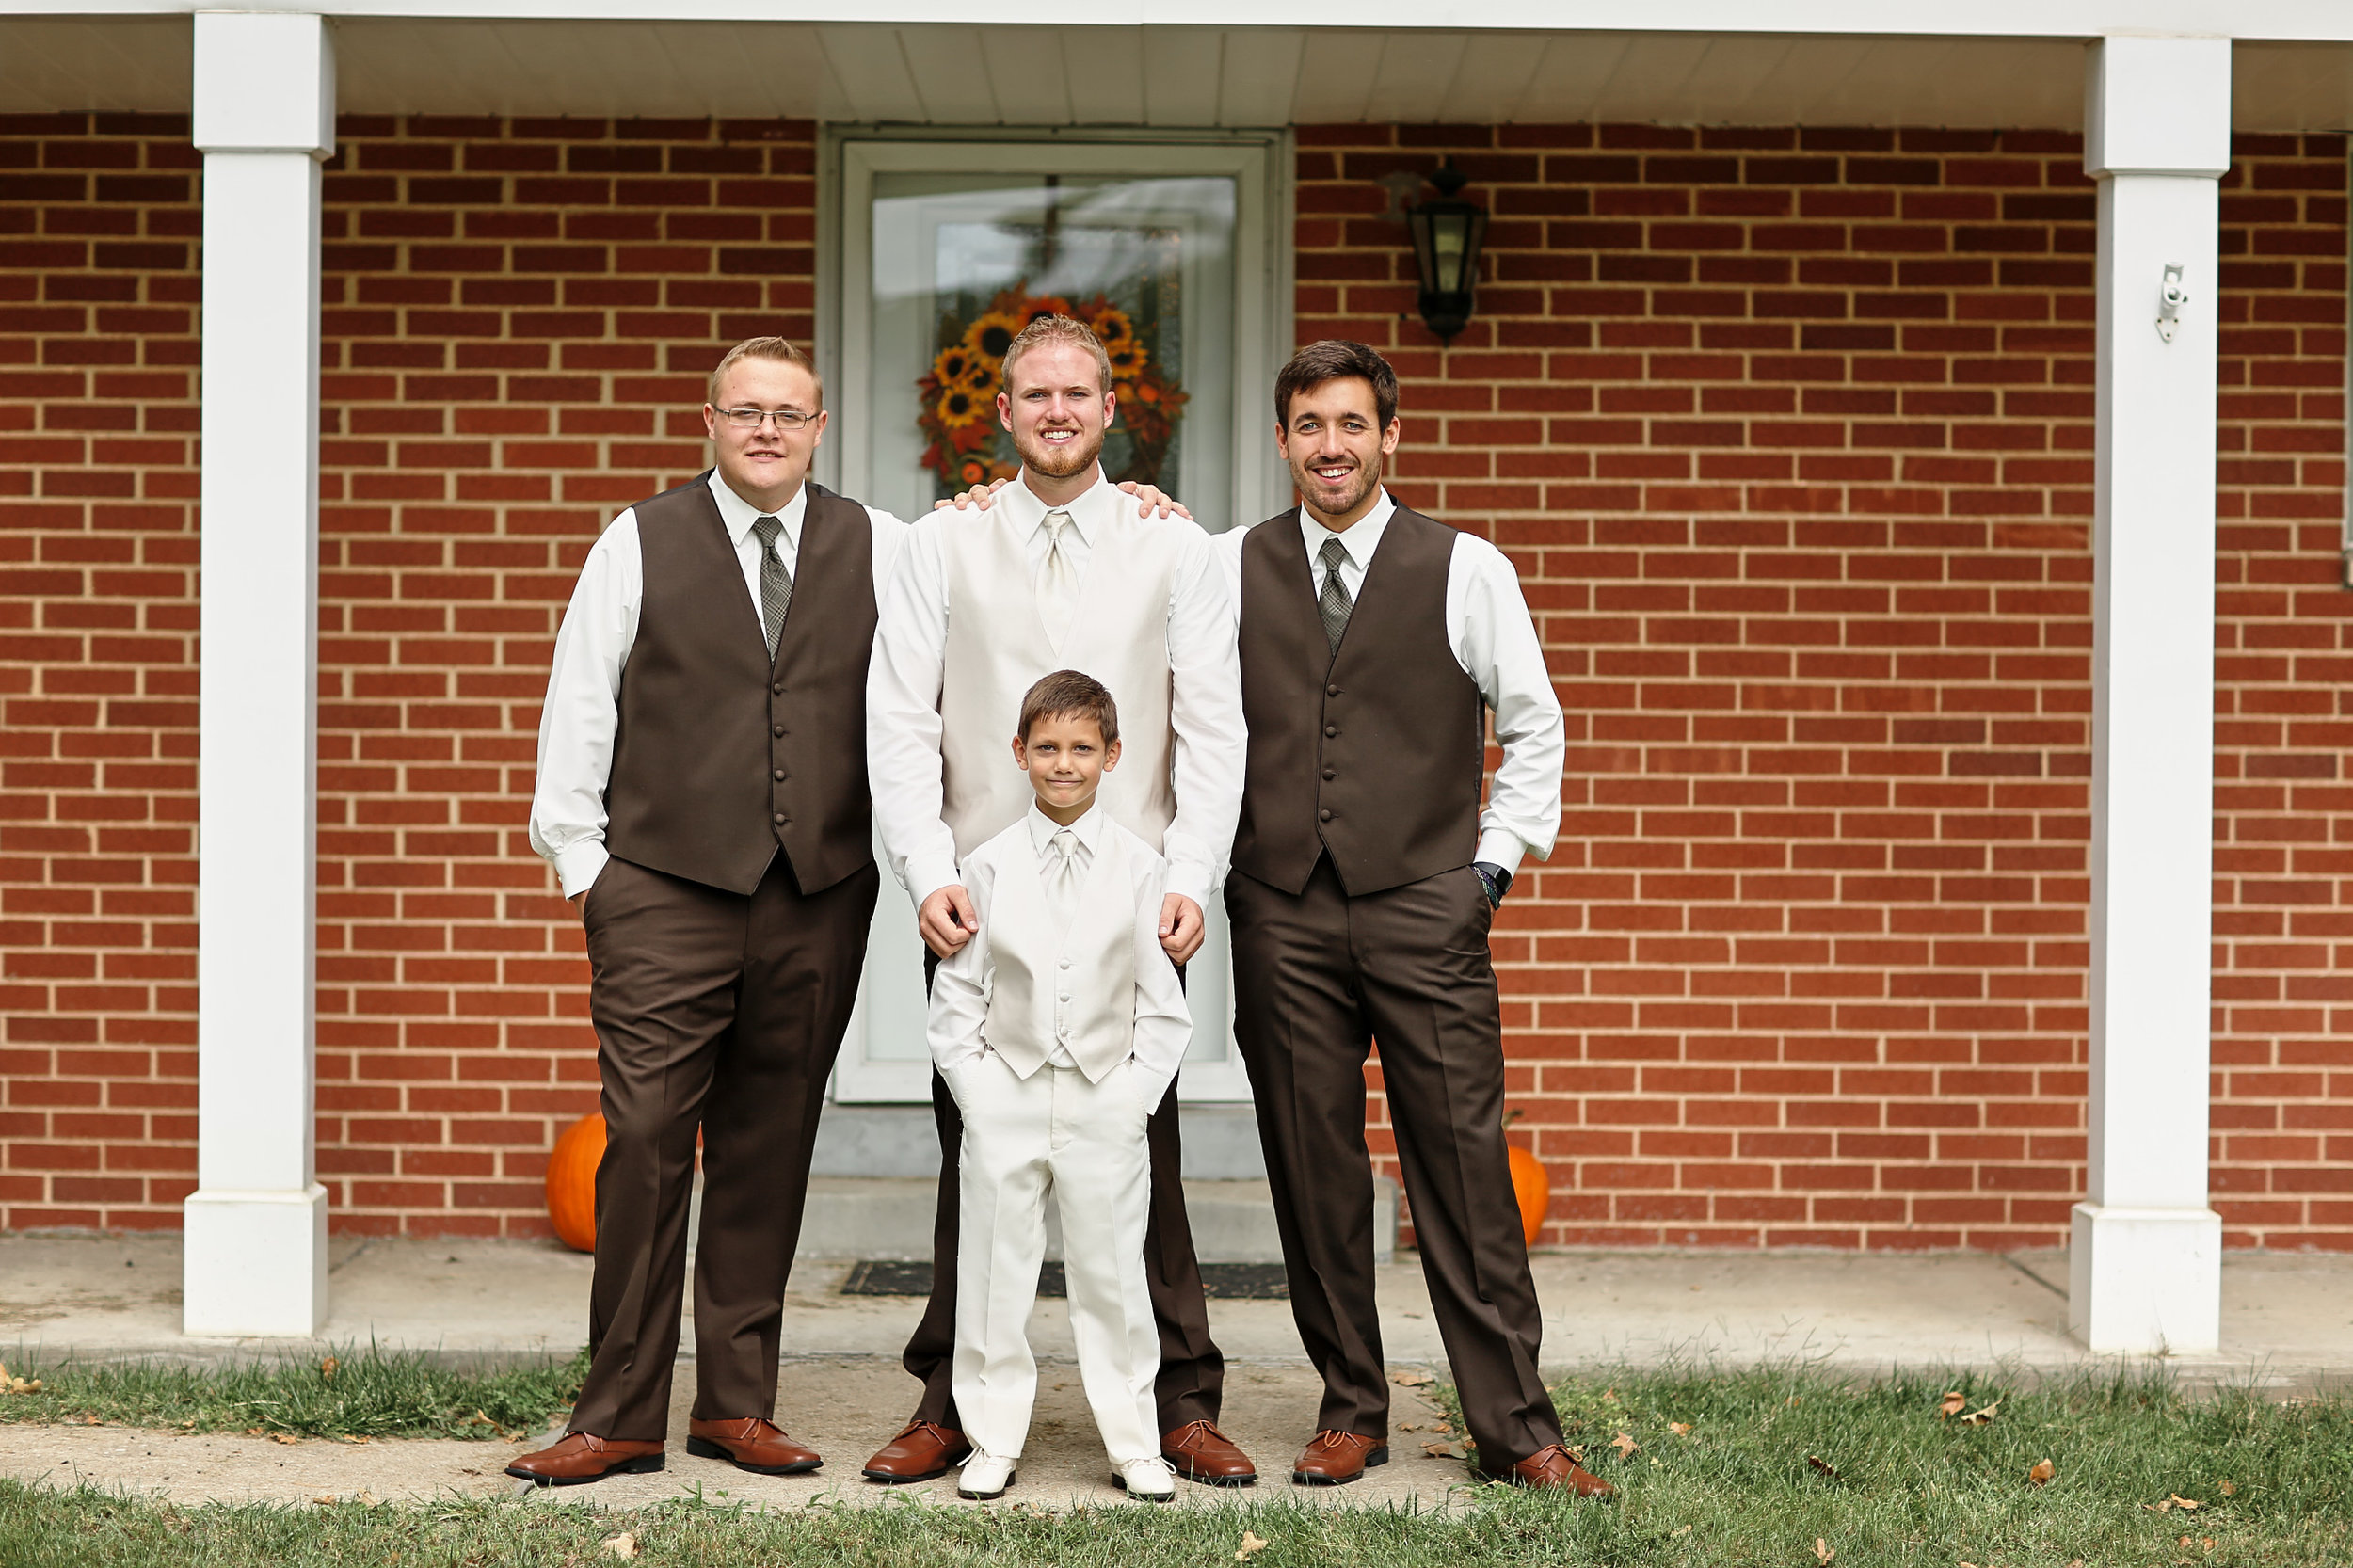 Daniel Boone Home Peace Chapel Wedding and Cedar Lake Cellars Wedding by St Louis Wedding Photographers Oldani Photography 25.jpg